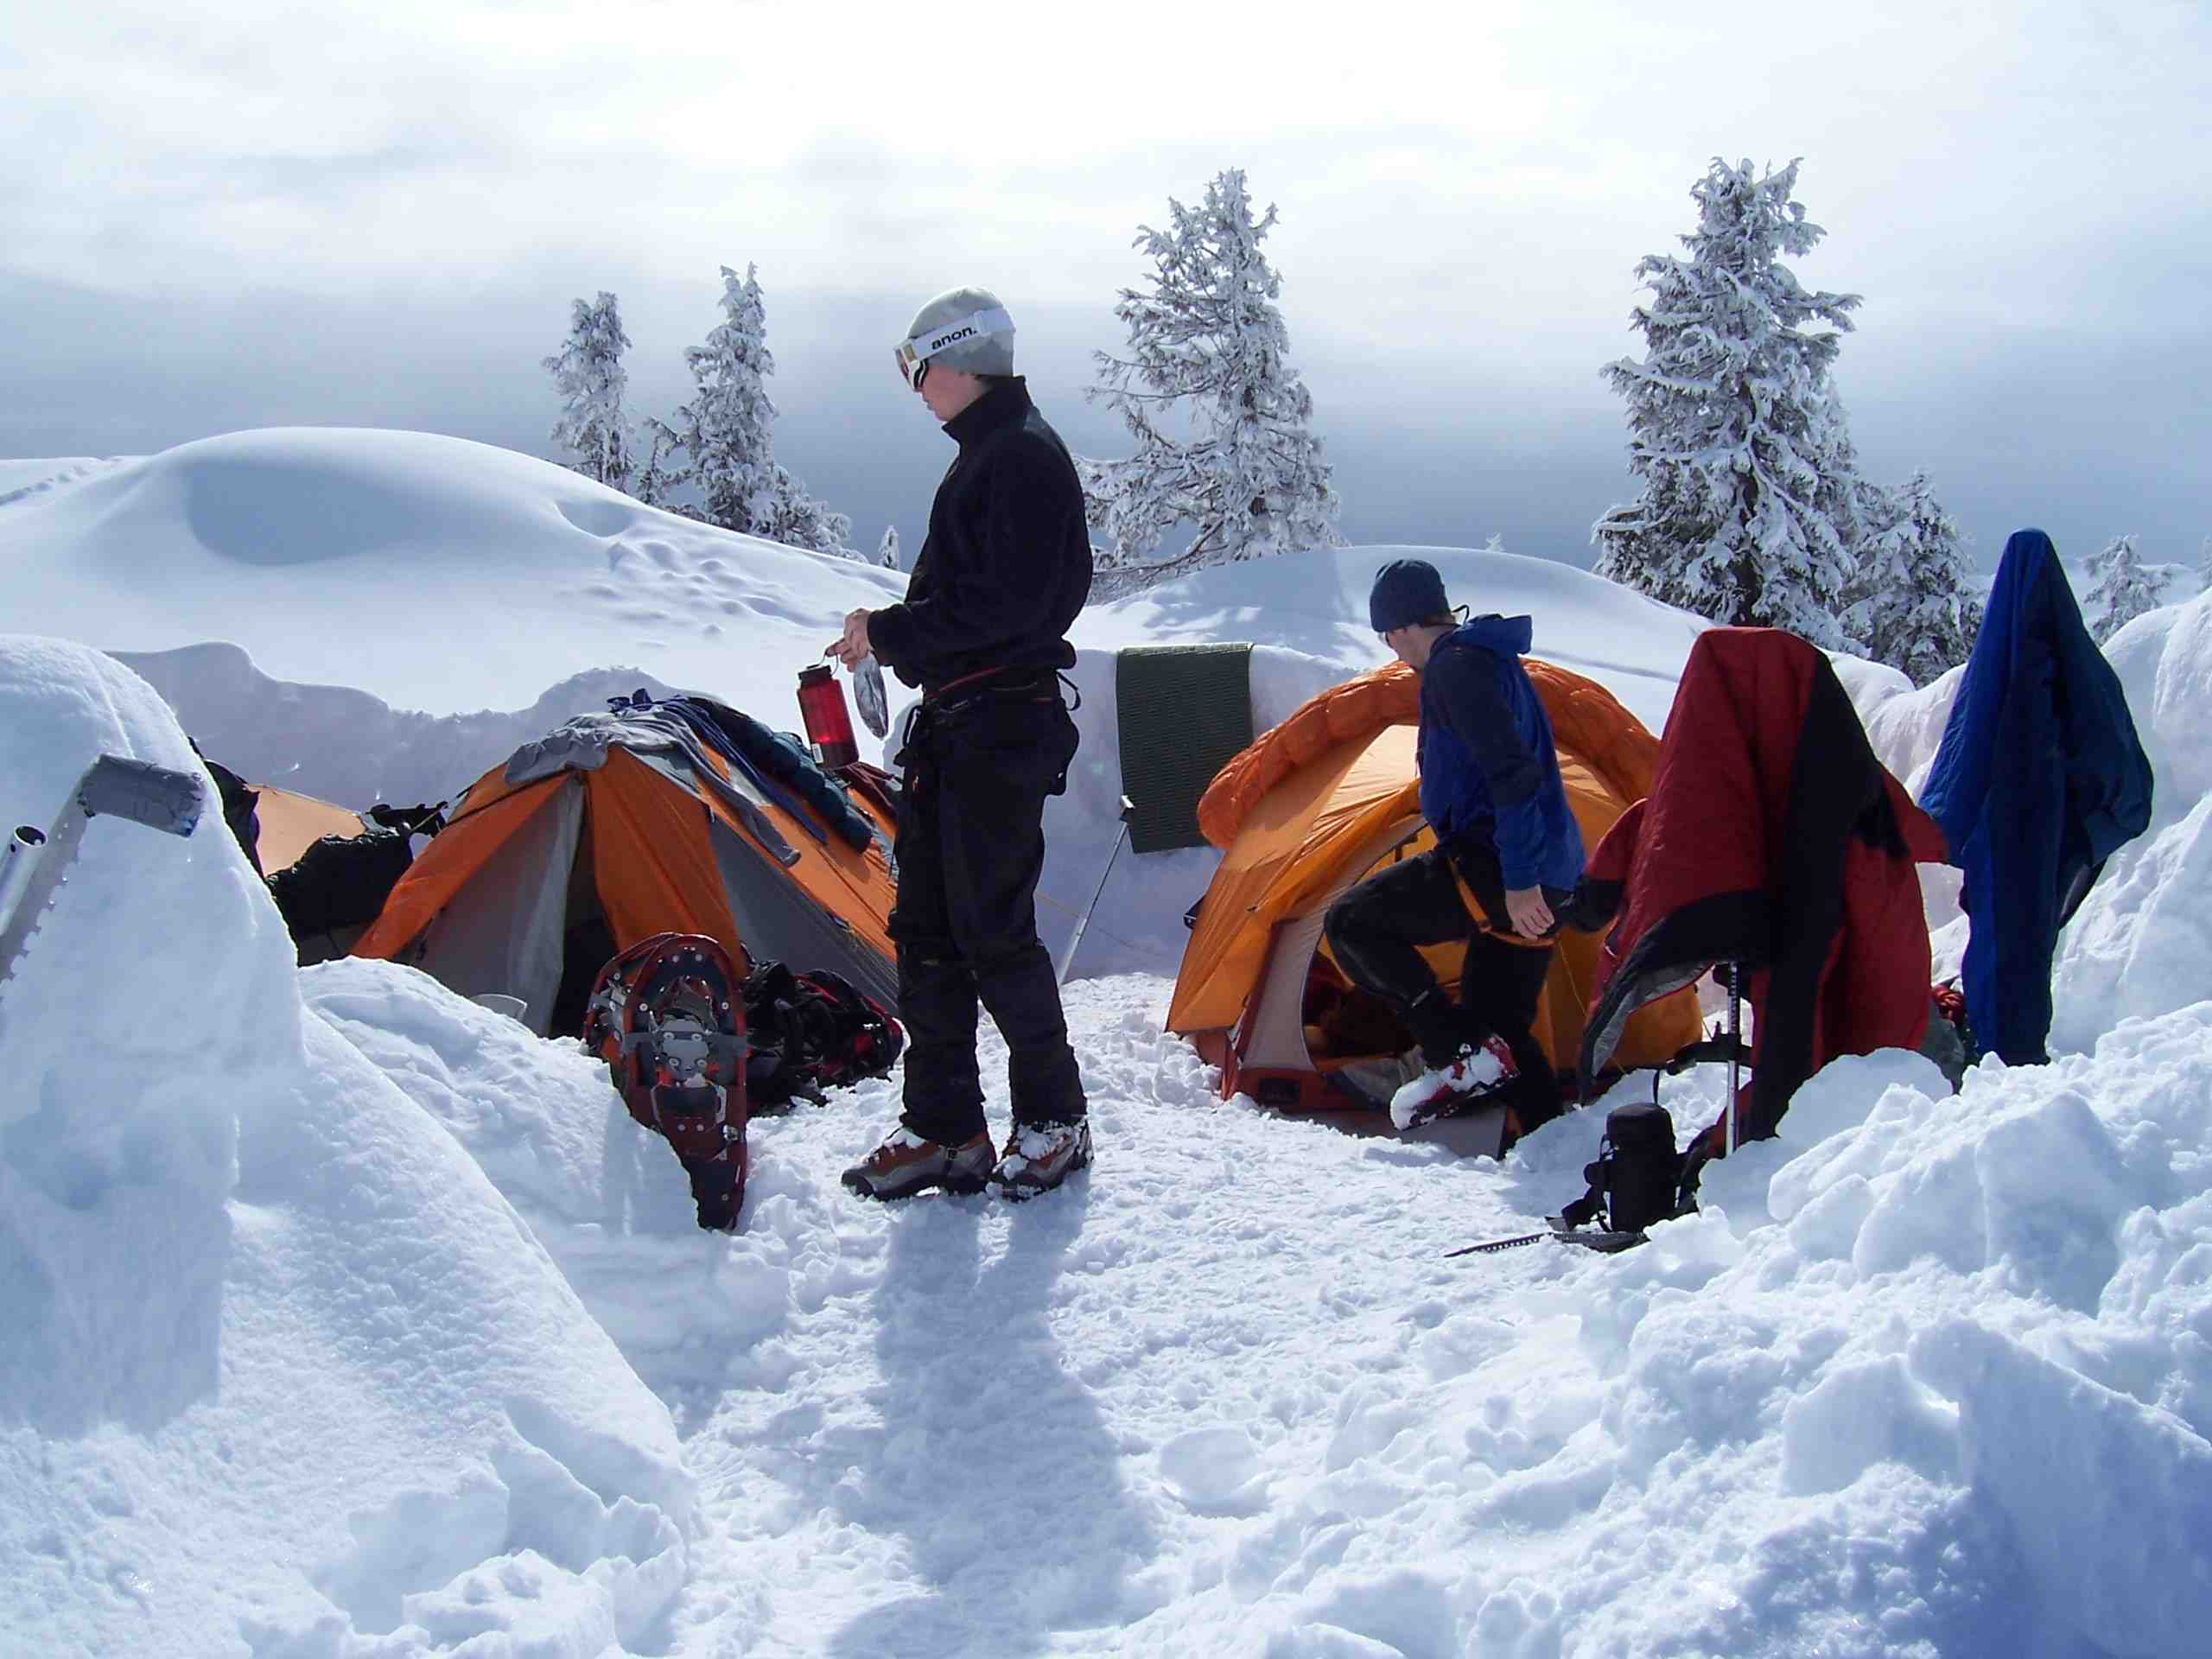 Winter Camping in the Cascades